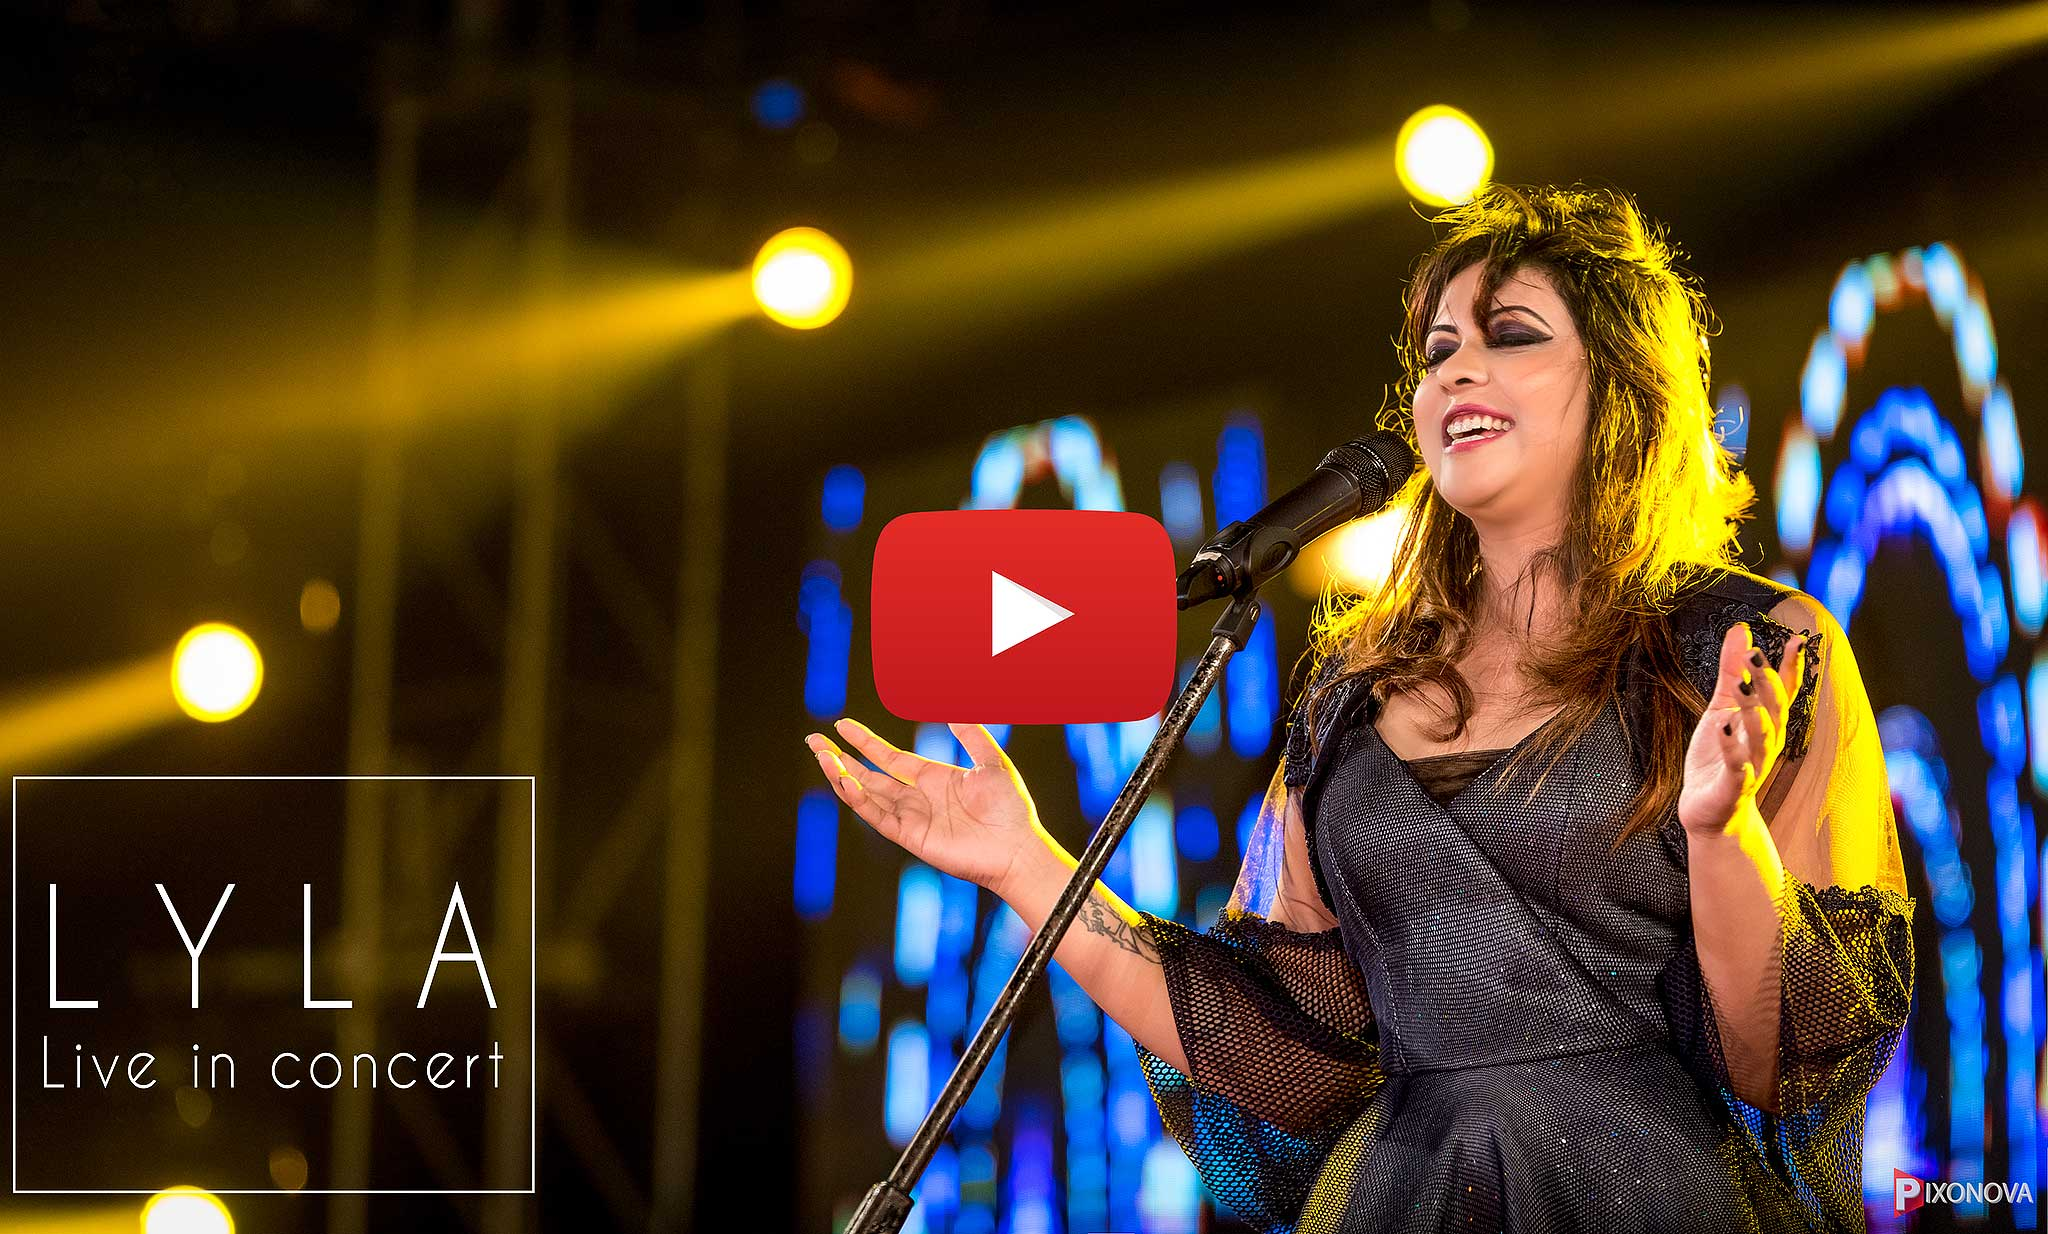 Lyla-live-in-concert- event-videography